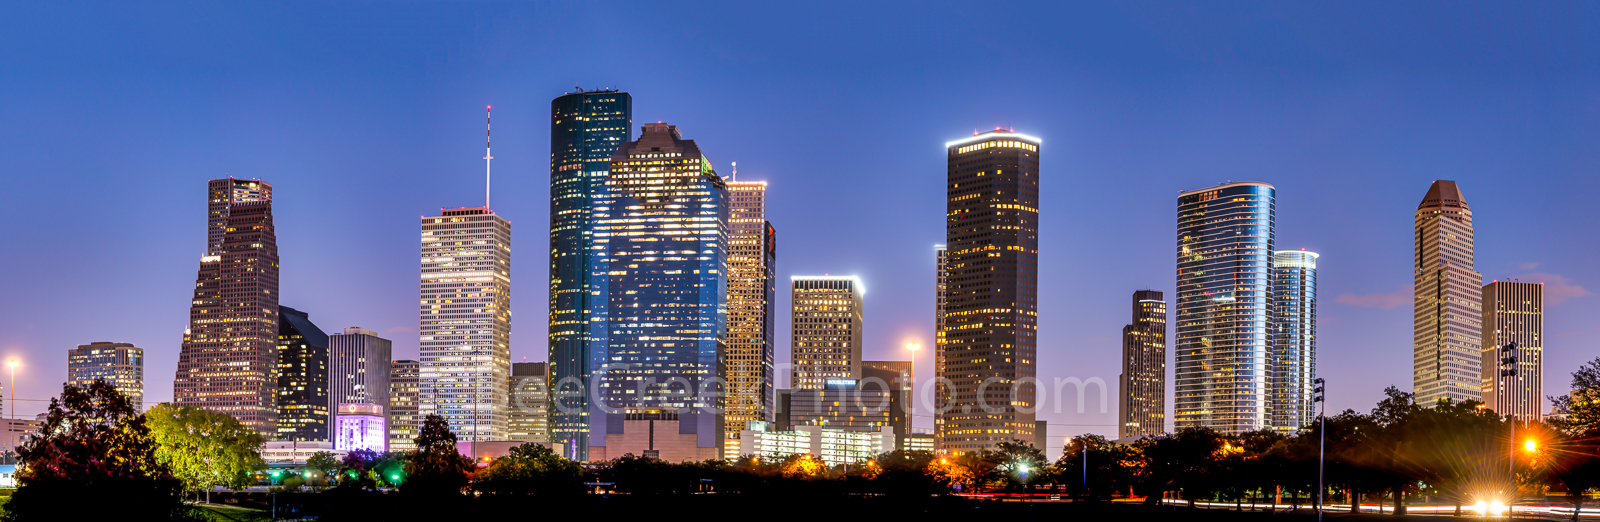 Houston, architecture, bayou, city, city scene, cityscape, cityscapes, downtown, high rises, houston texas, images of Houston, night, night skyline, pano, panorama, panoramic, skyline, skylines, theat, photo